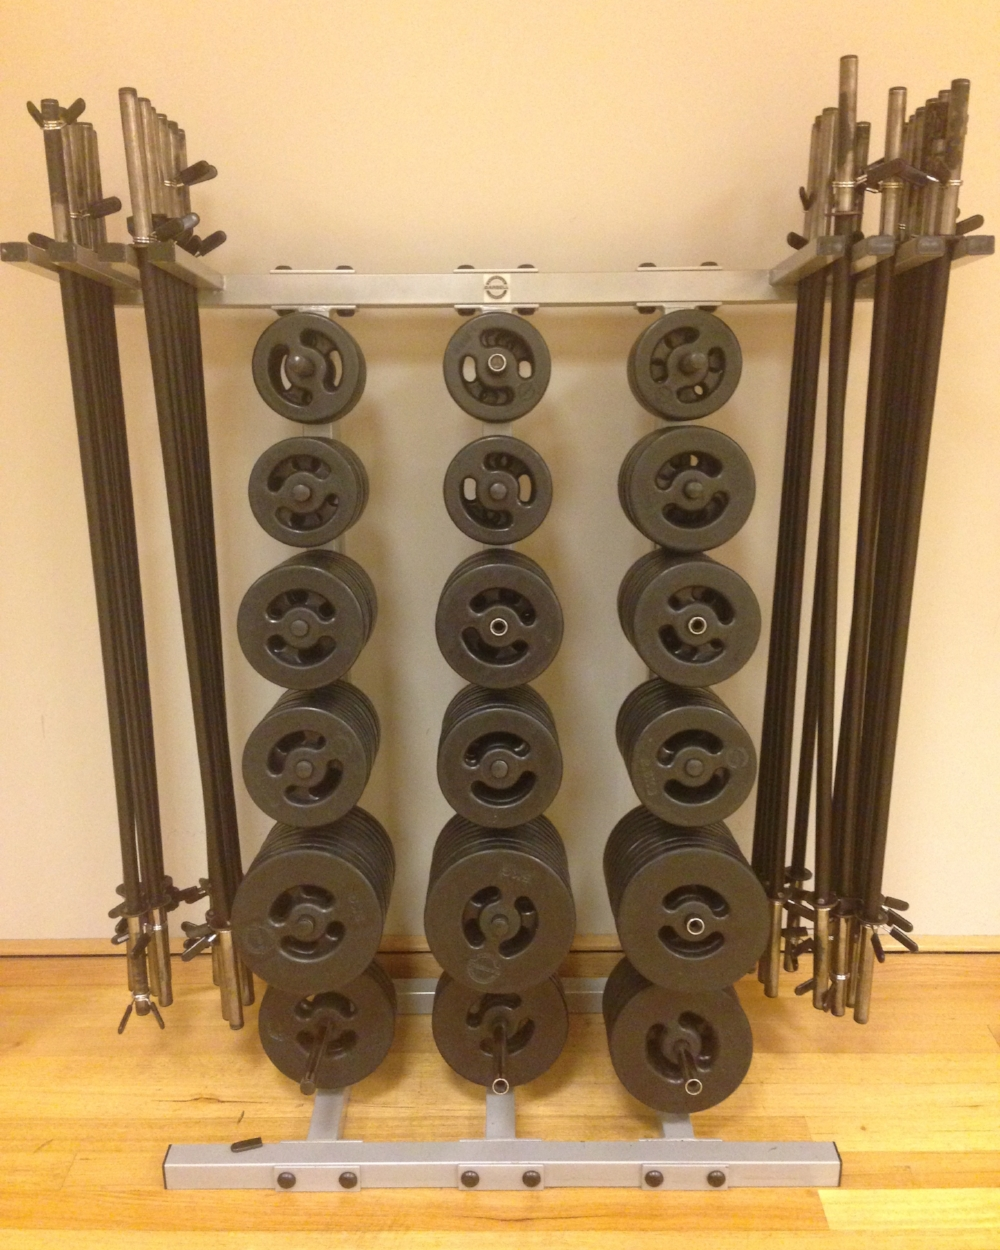 BodyPump: 1.25kg, 2.5kg & 5kg weights.